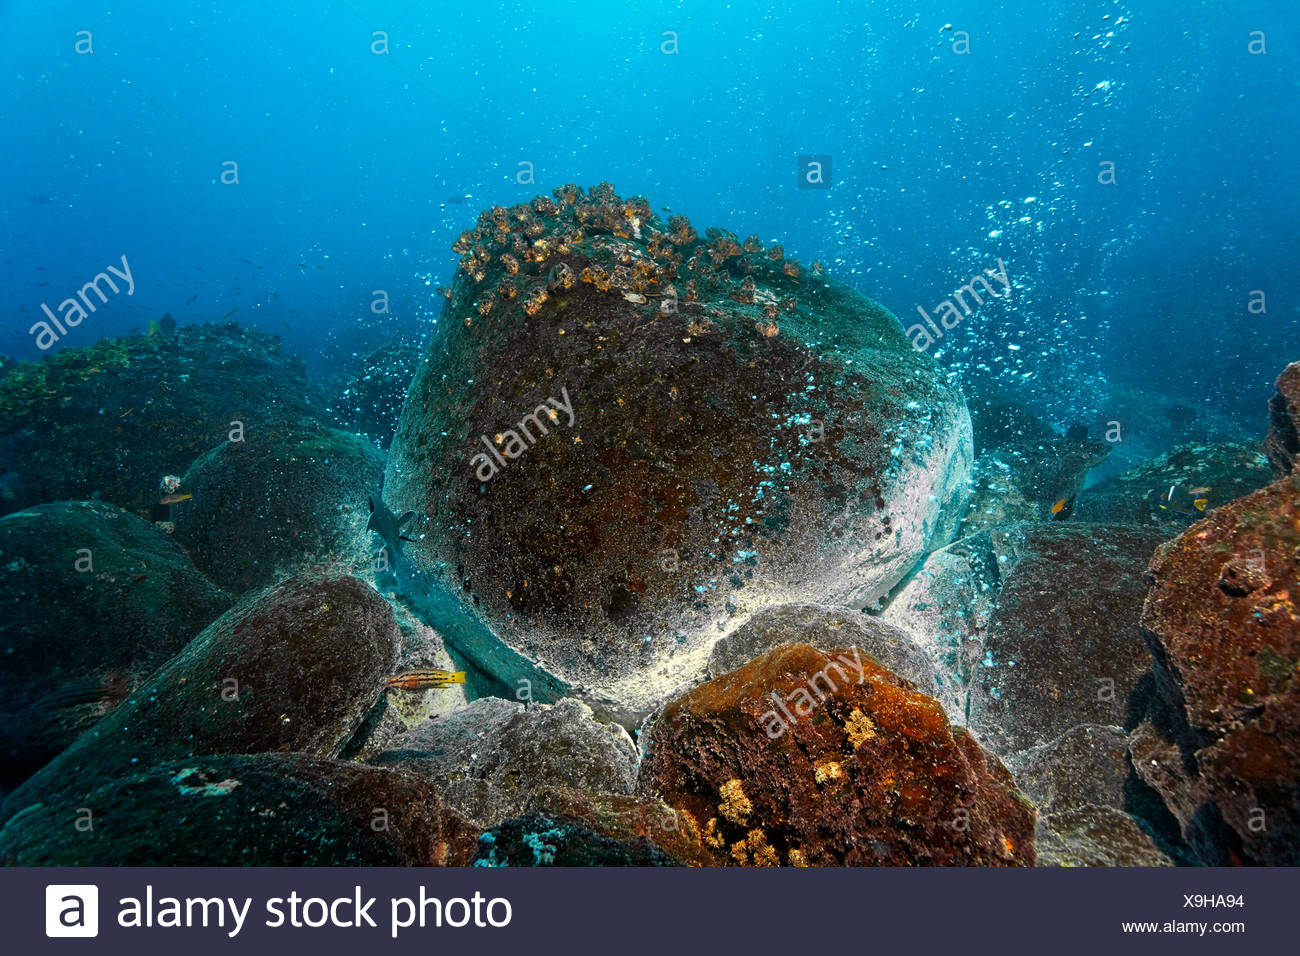 Rocks over a volcanic hot spot, white mineral deposits, hot springs, gas bubbles, overgrown, barnacles (Balanidae), Mexican - Stock Image